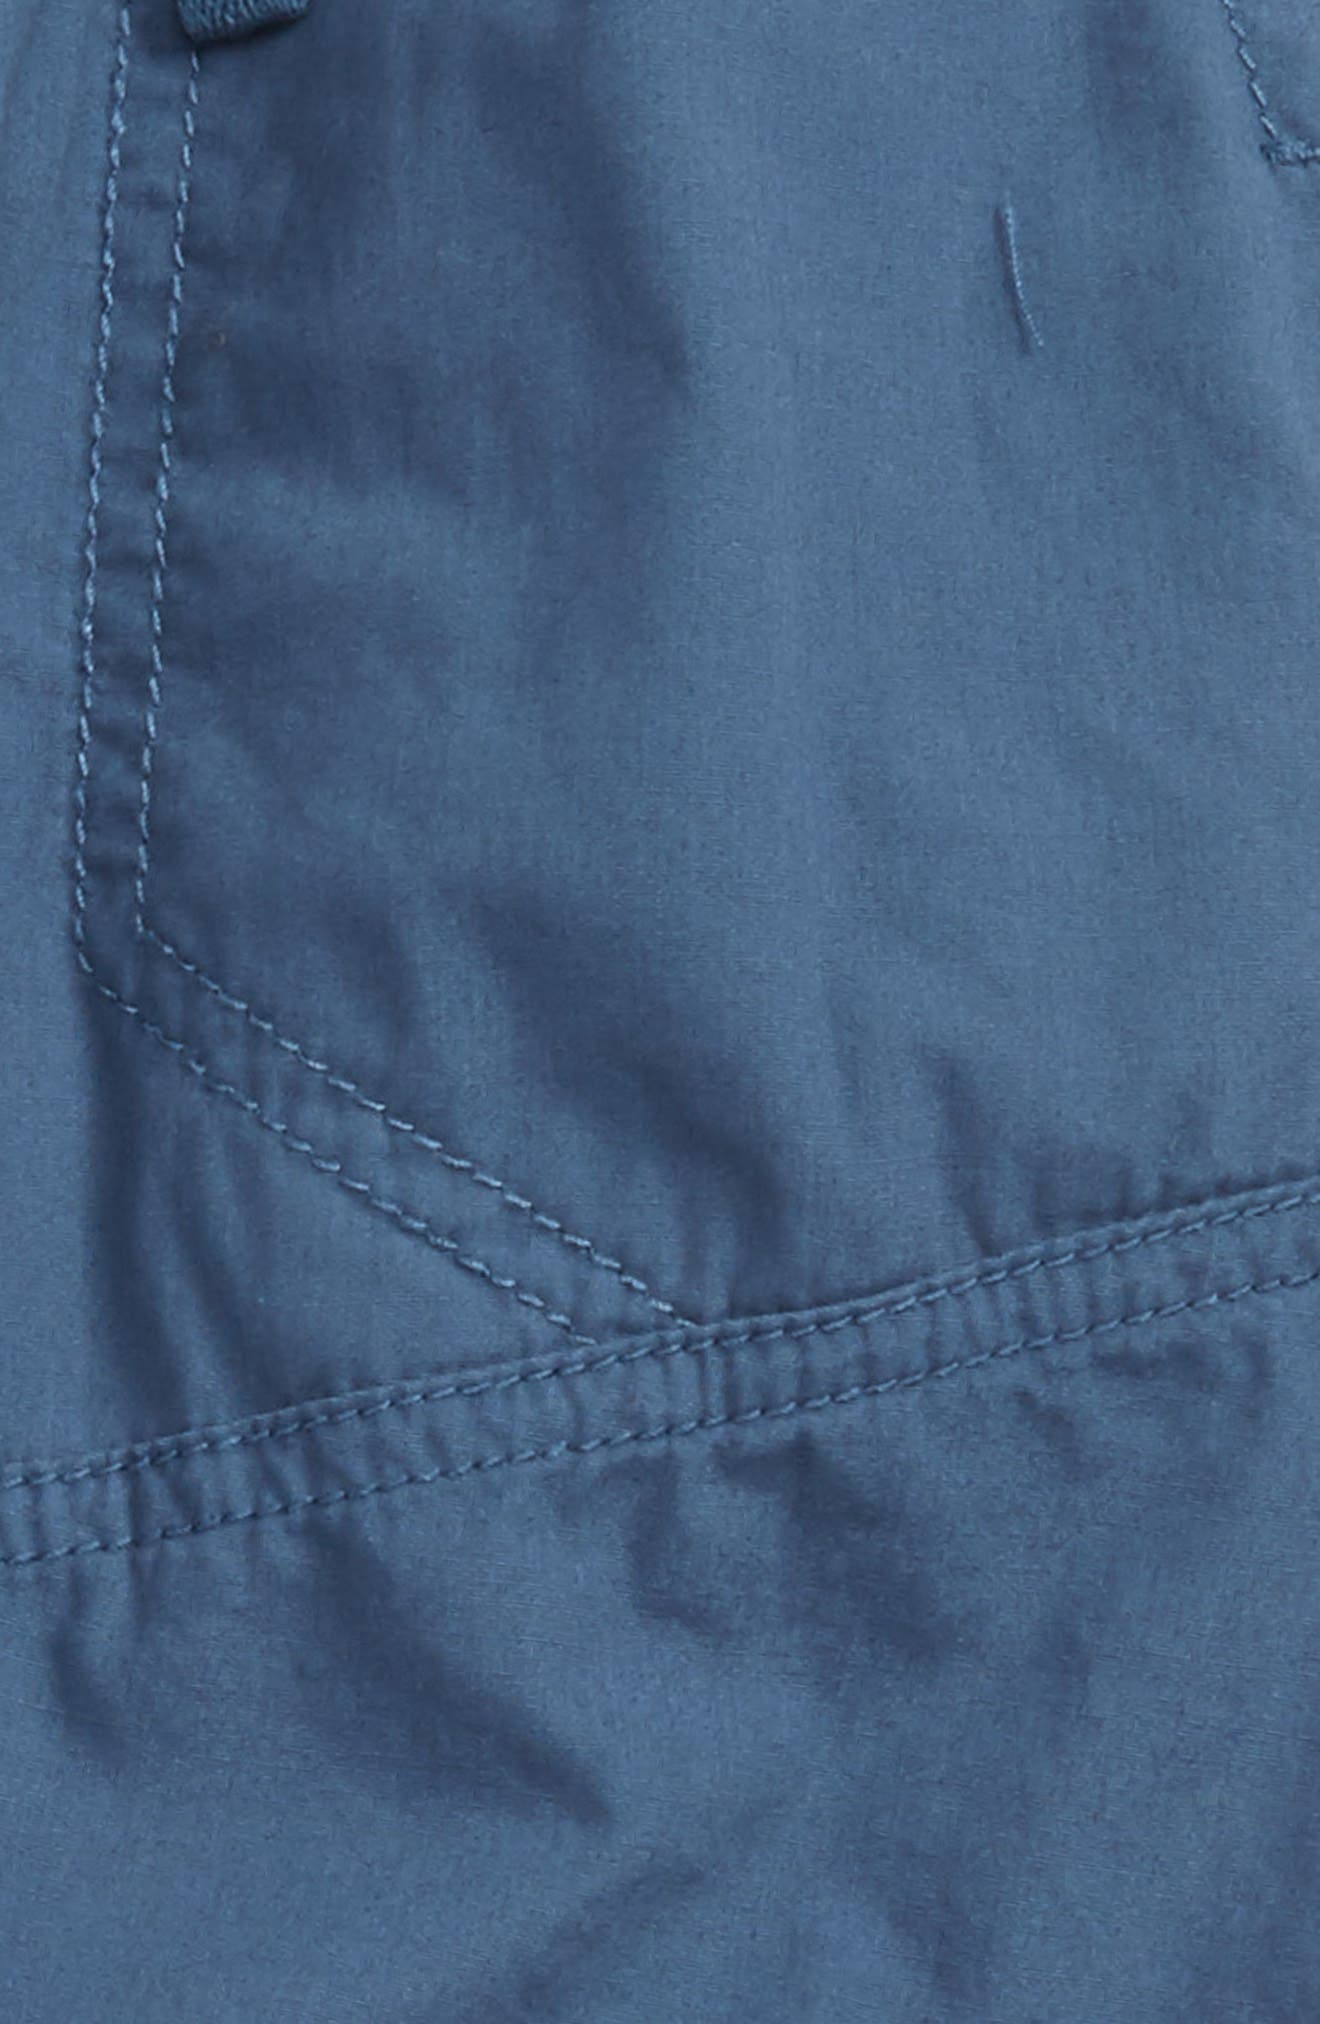 Jersey Lined Pants,                             Alternate thumbnail 3, color,                             Loch Blue